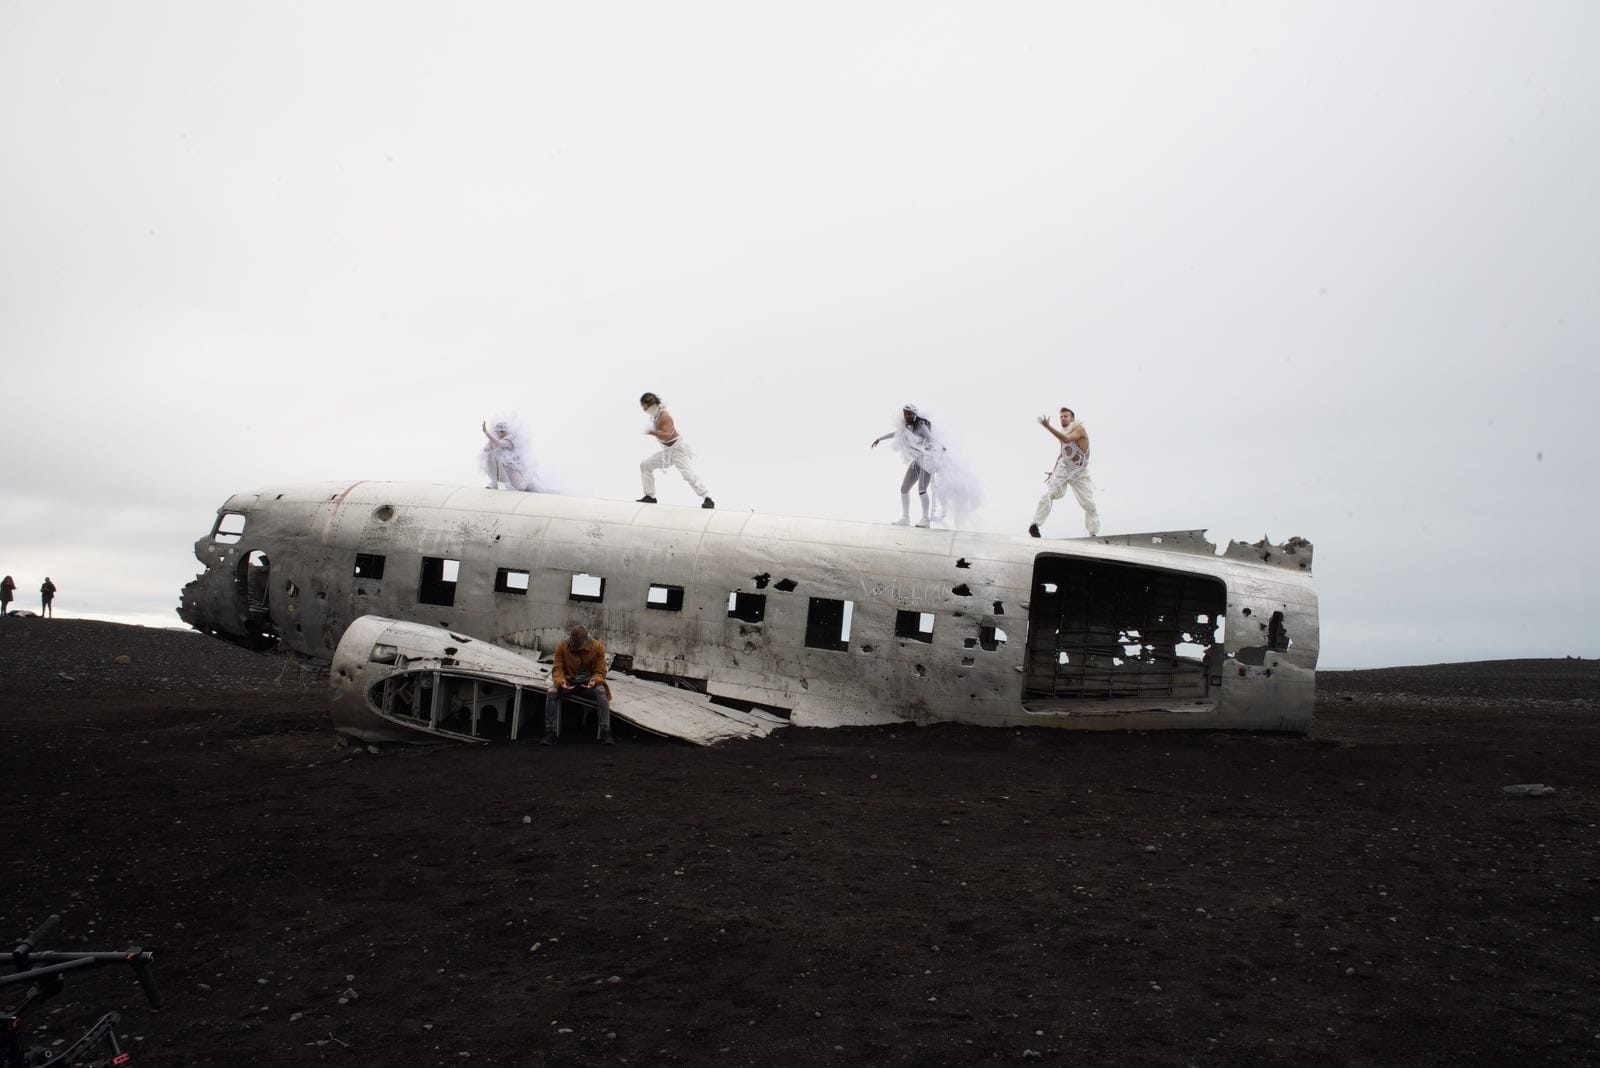 Iceland, airplane wreck from the outside